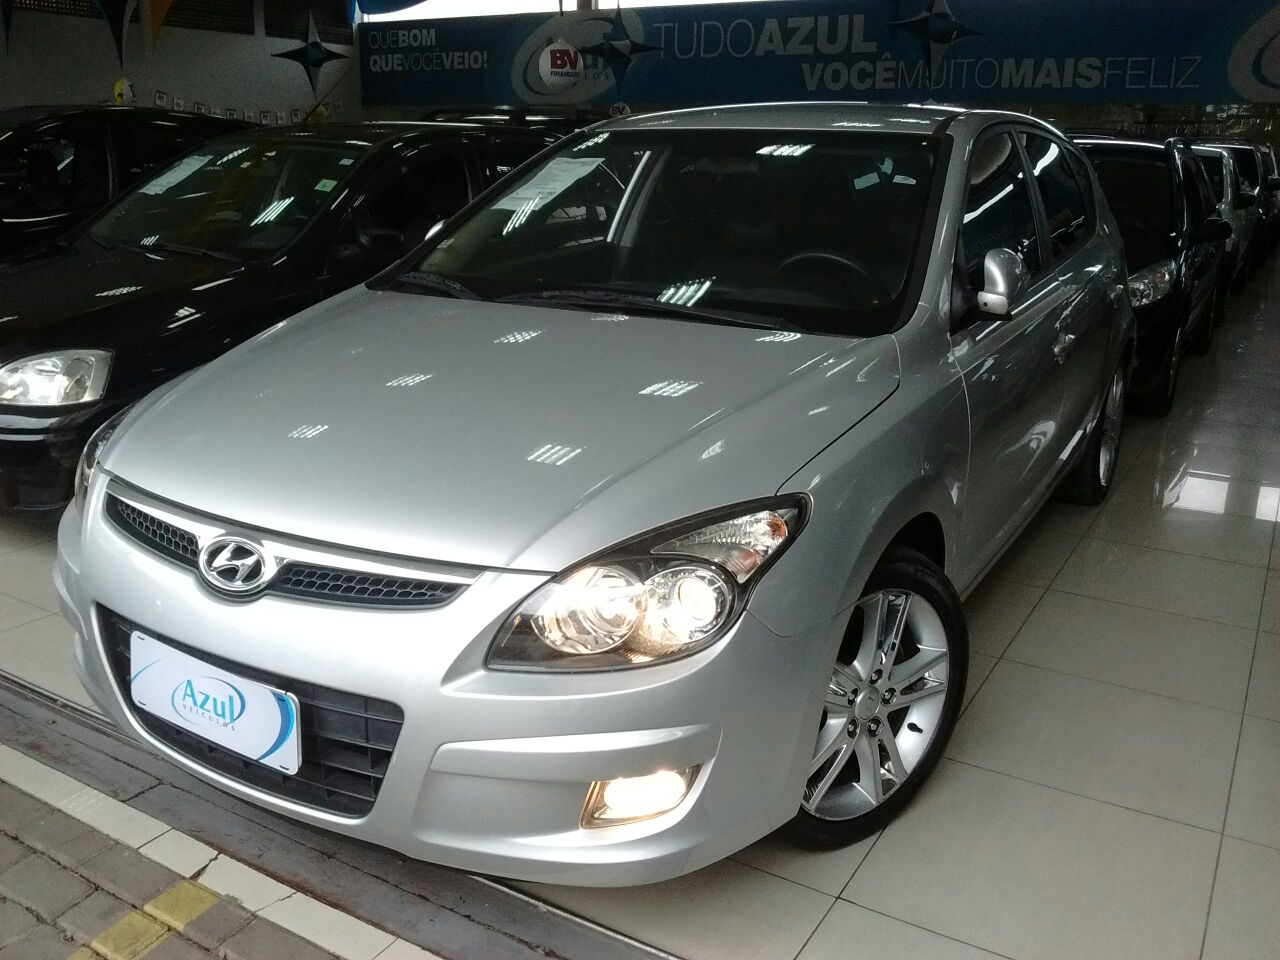 I302.0 MPI 16V GASOLINA 4P MANUAL